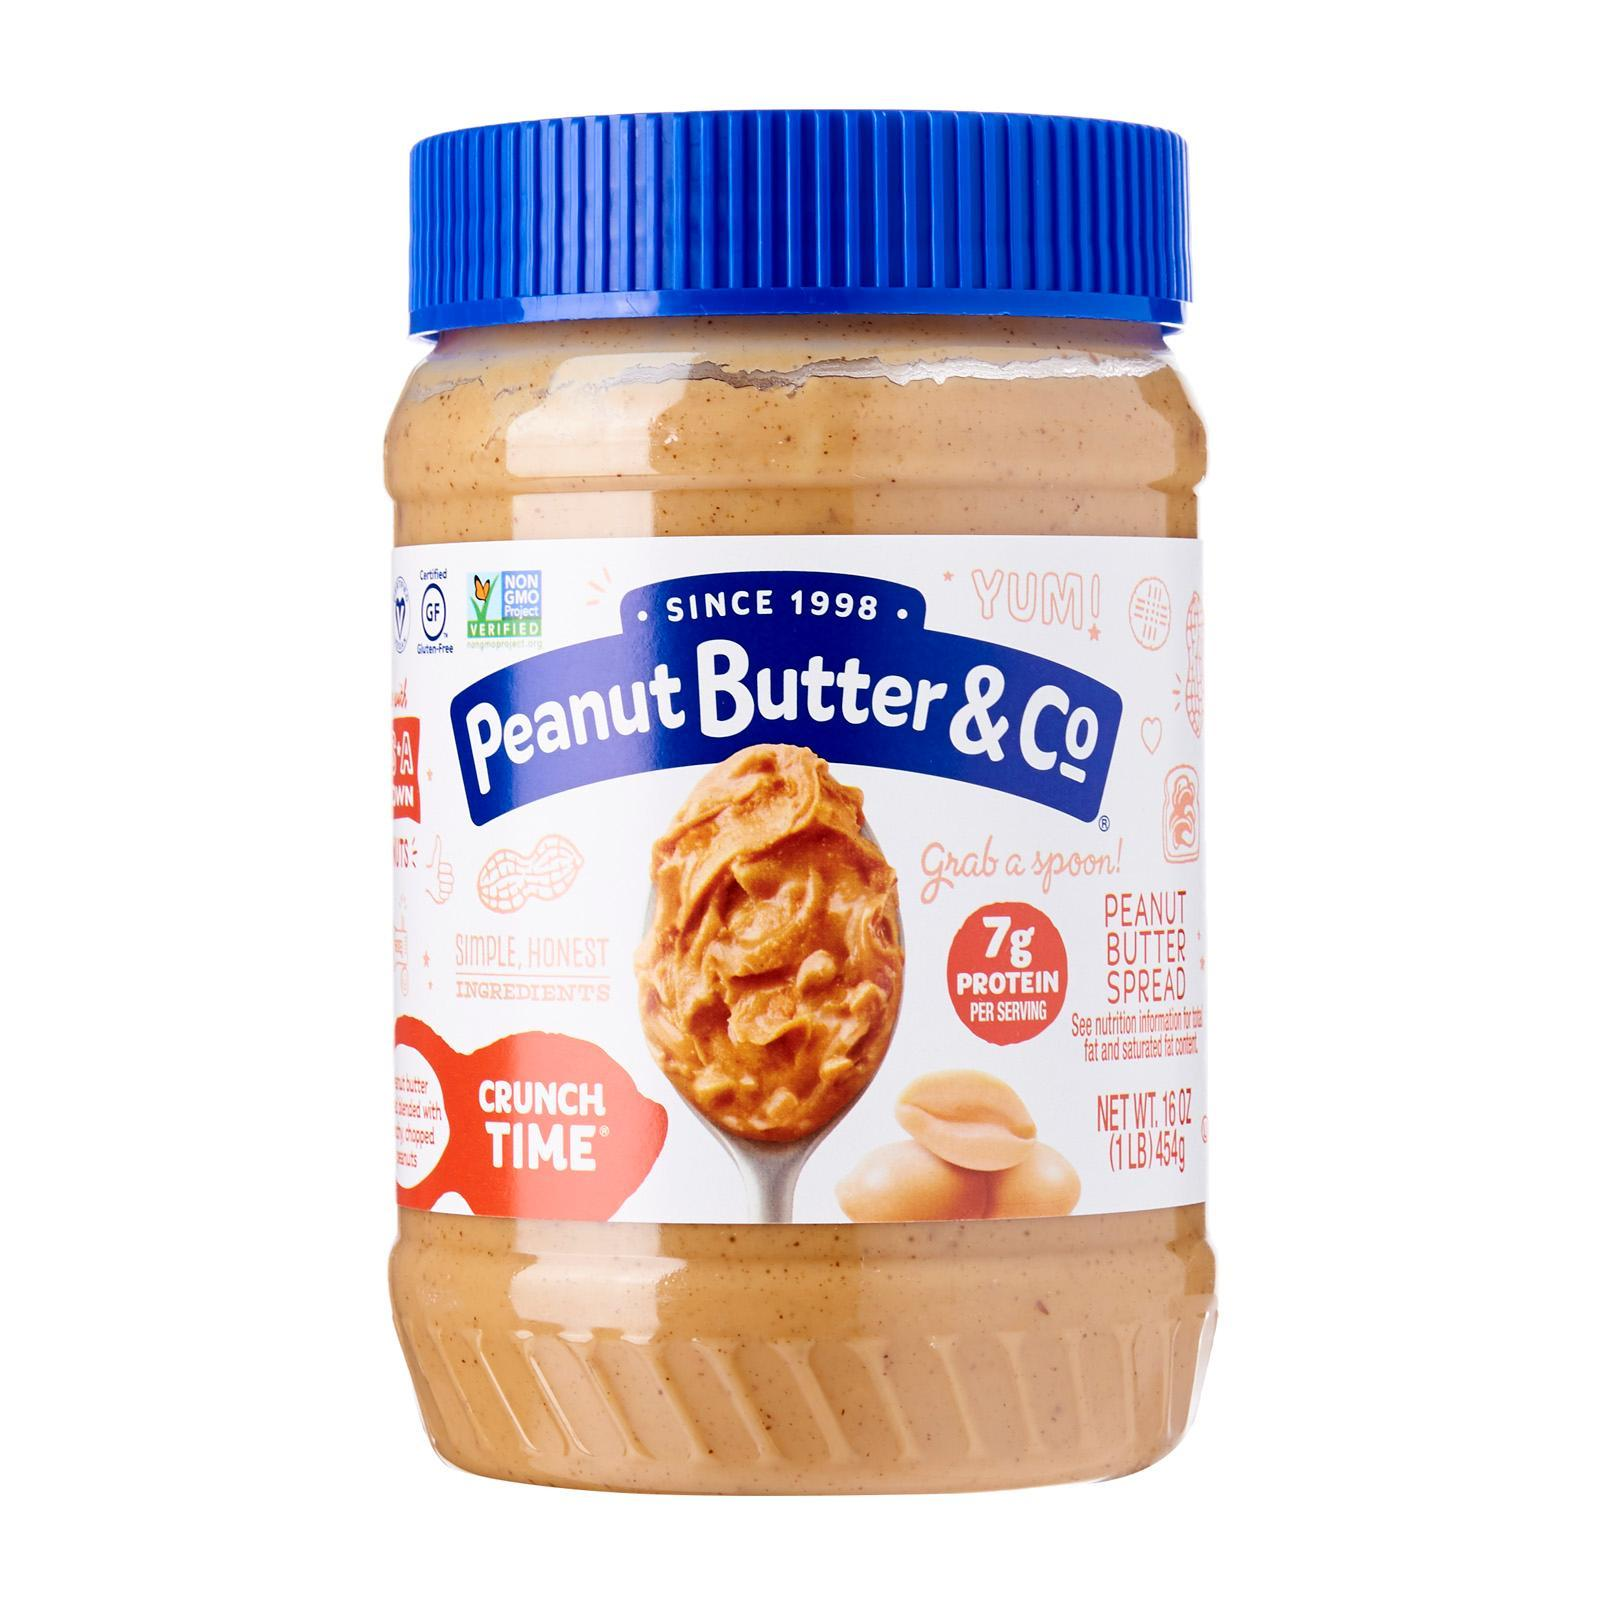 Peanut Butter & Co Crunch Time Peanut Butter 16oz - By Wholesome Harvest